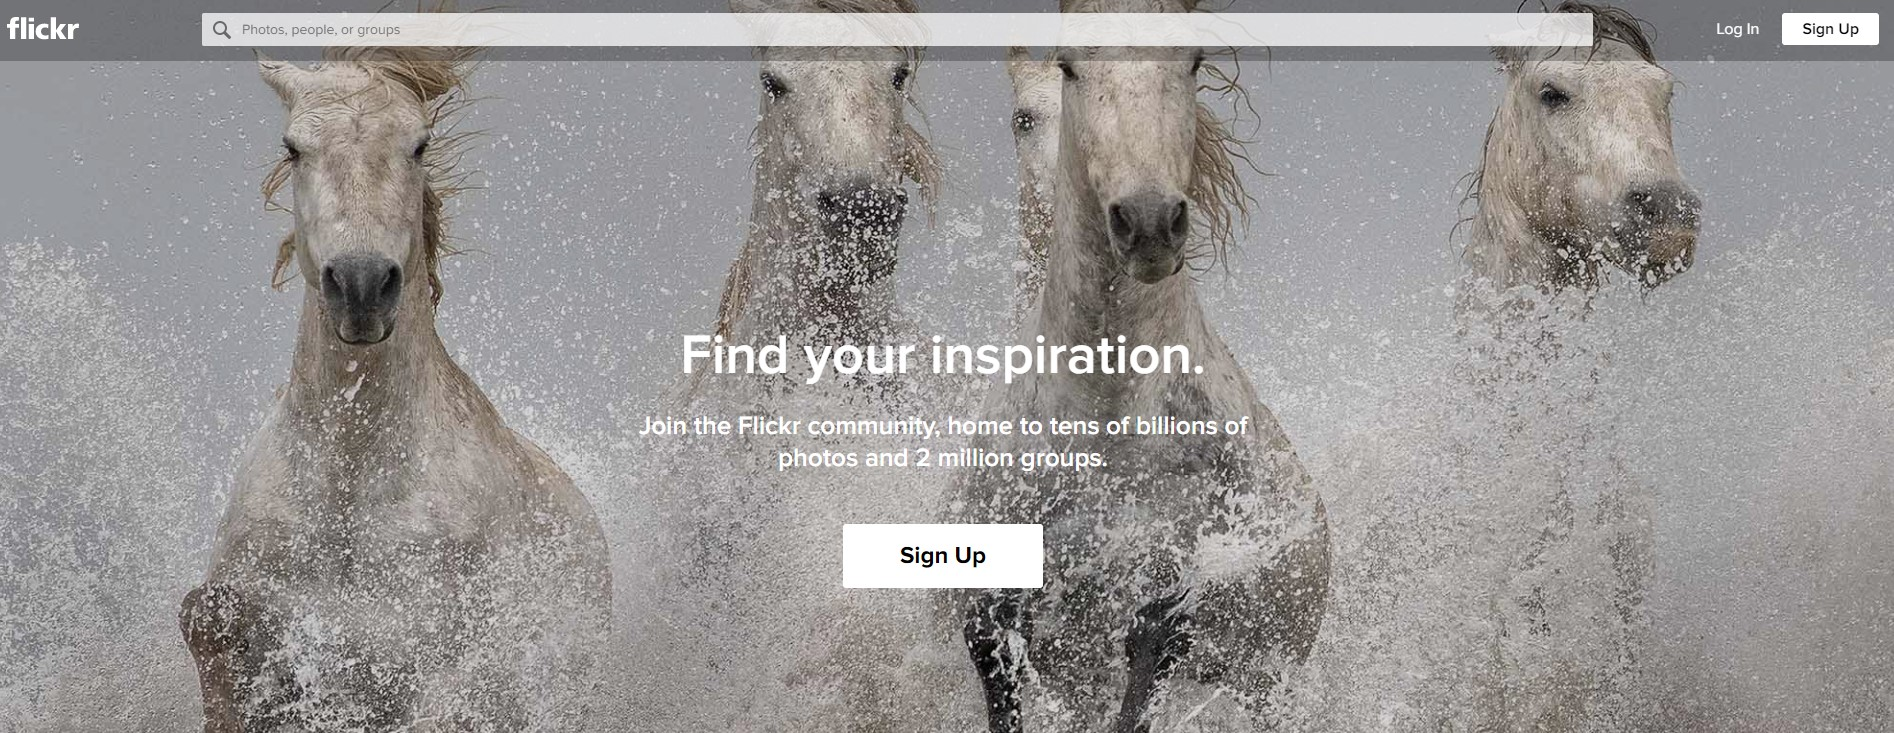 Flickr landing page